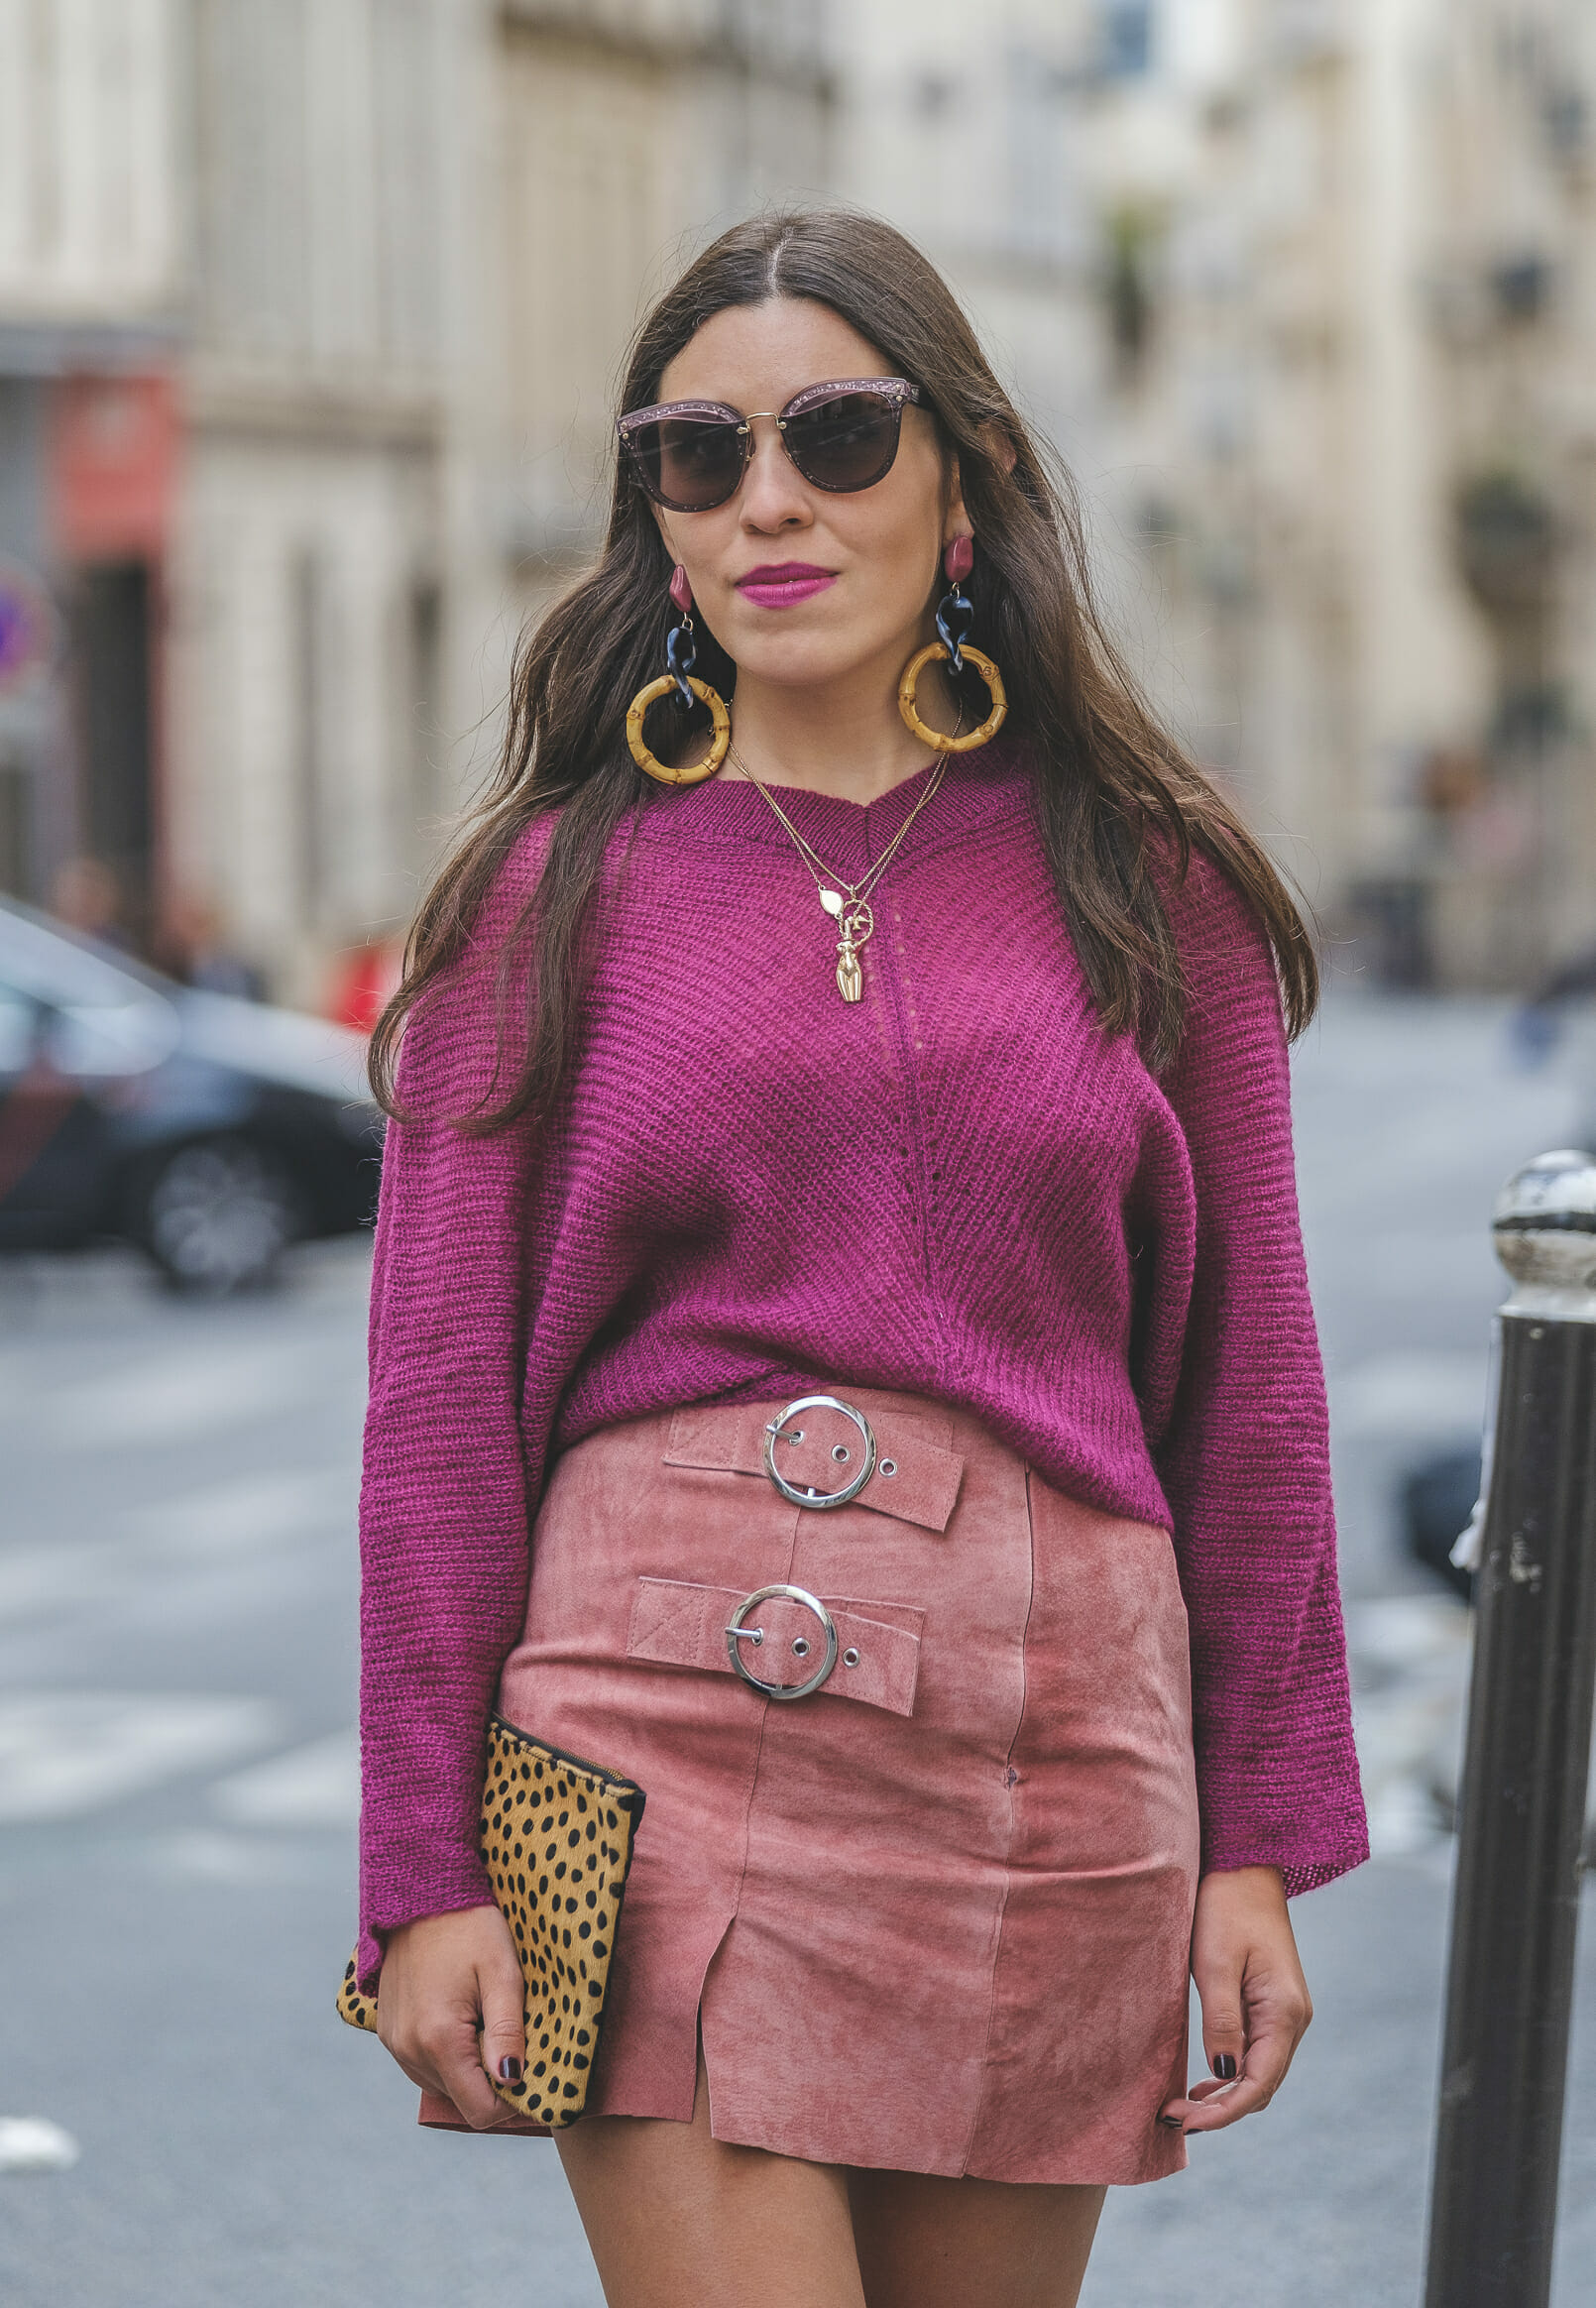 Le Fashionaire purple mohair mango knit pale pink leather buckles skirt bold long zara bamboo pink earrings leopard leather sfera clutch miu miu grey pink sunglasses 9058 EN purple mohair mango knit pale pink leather buckles skirt bold long zara bamboo pink earrings leopard leather sfera clutch miu miu grey pink sunglasses 9058 EN